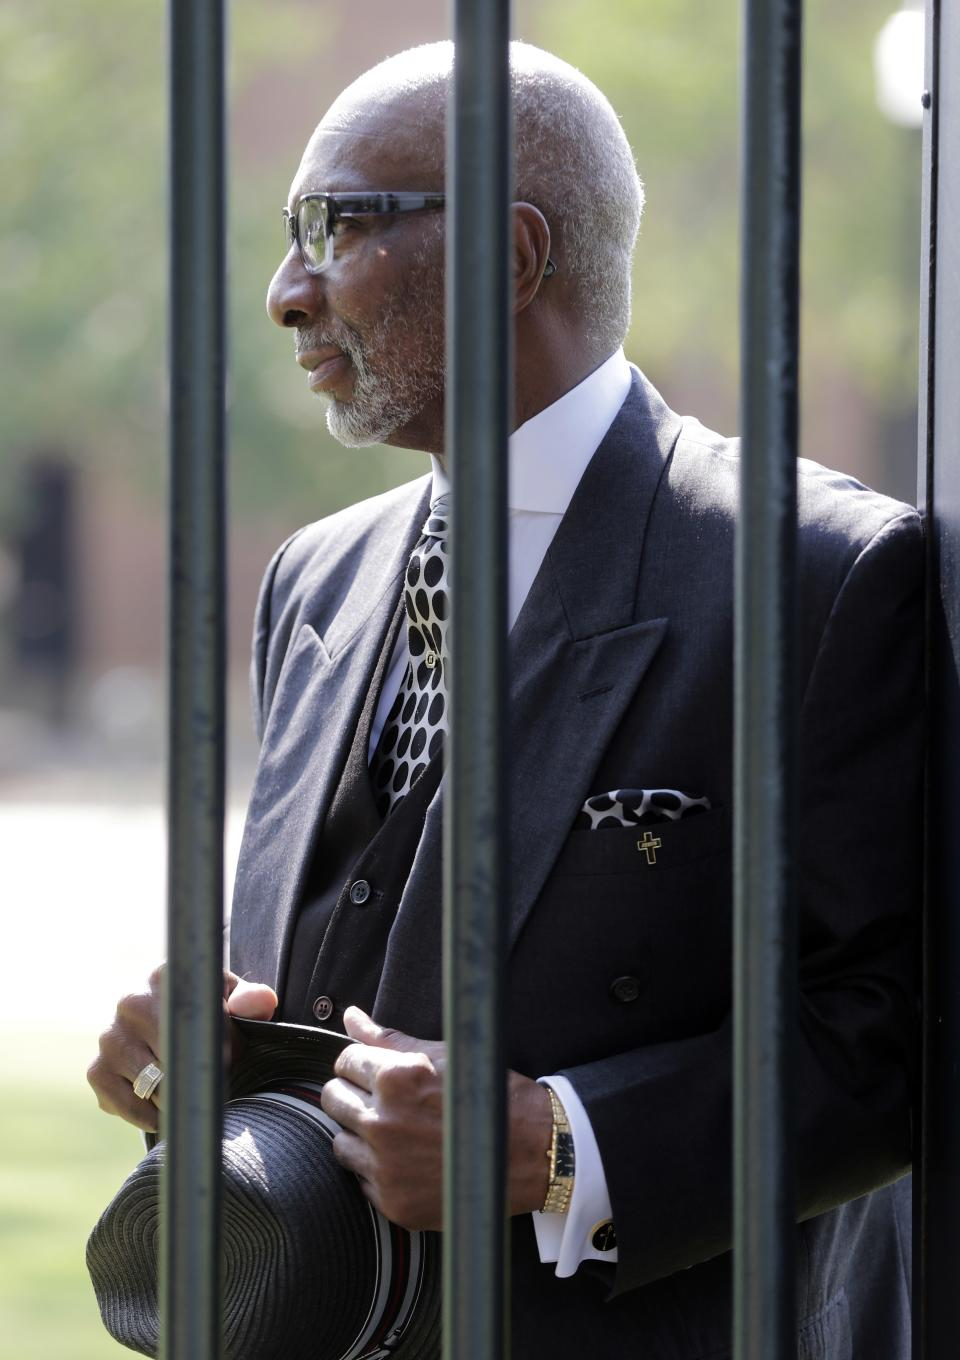 "Rev. Isreal Grant stands in Kelly Ingram Park in Birmingham, Ala., Friday, Sept. 6, 2013. Grant says he has never missed an election. ""My father quoted to me that there would never be a black president. If he were alive today, it would be too much for him."" (AP Photo/Dave Martin)"